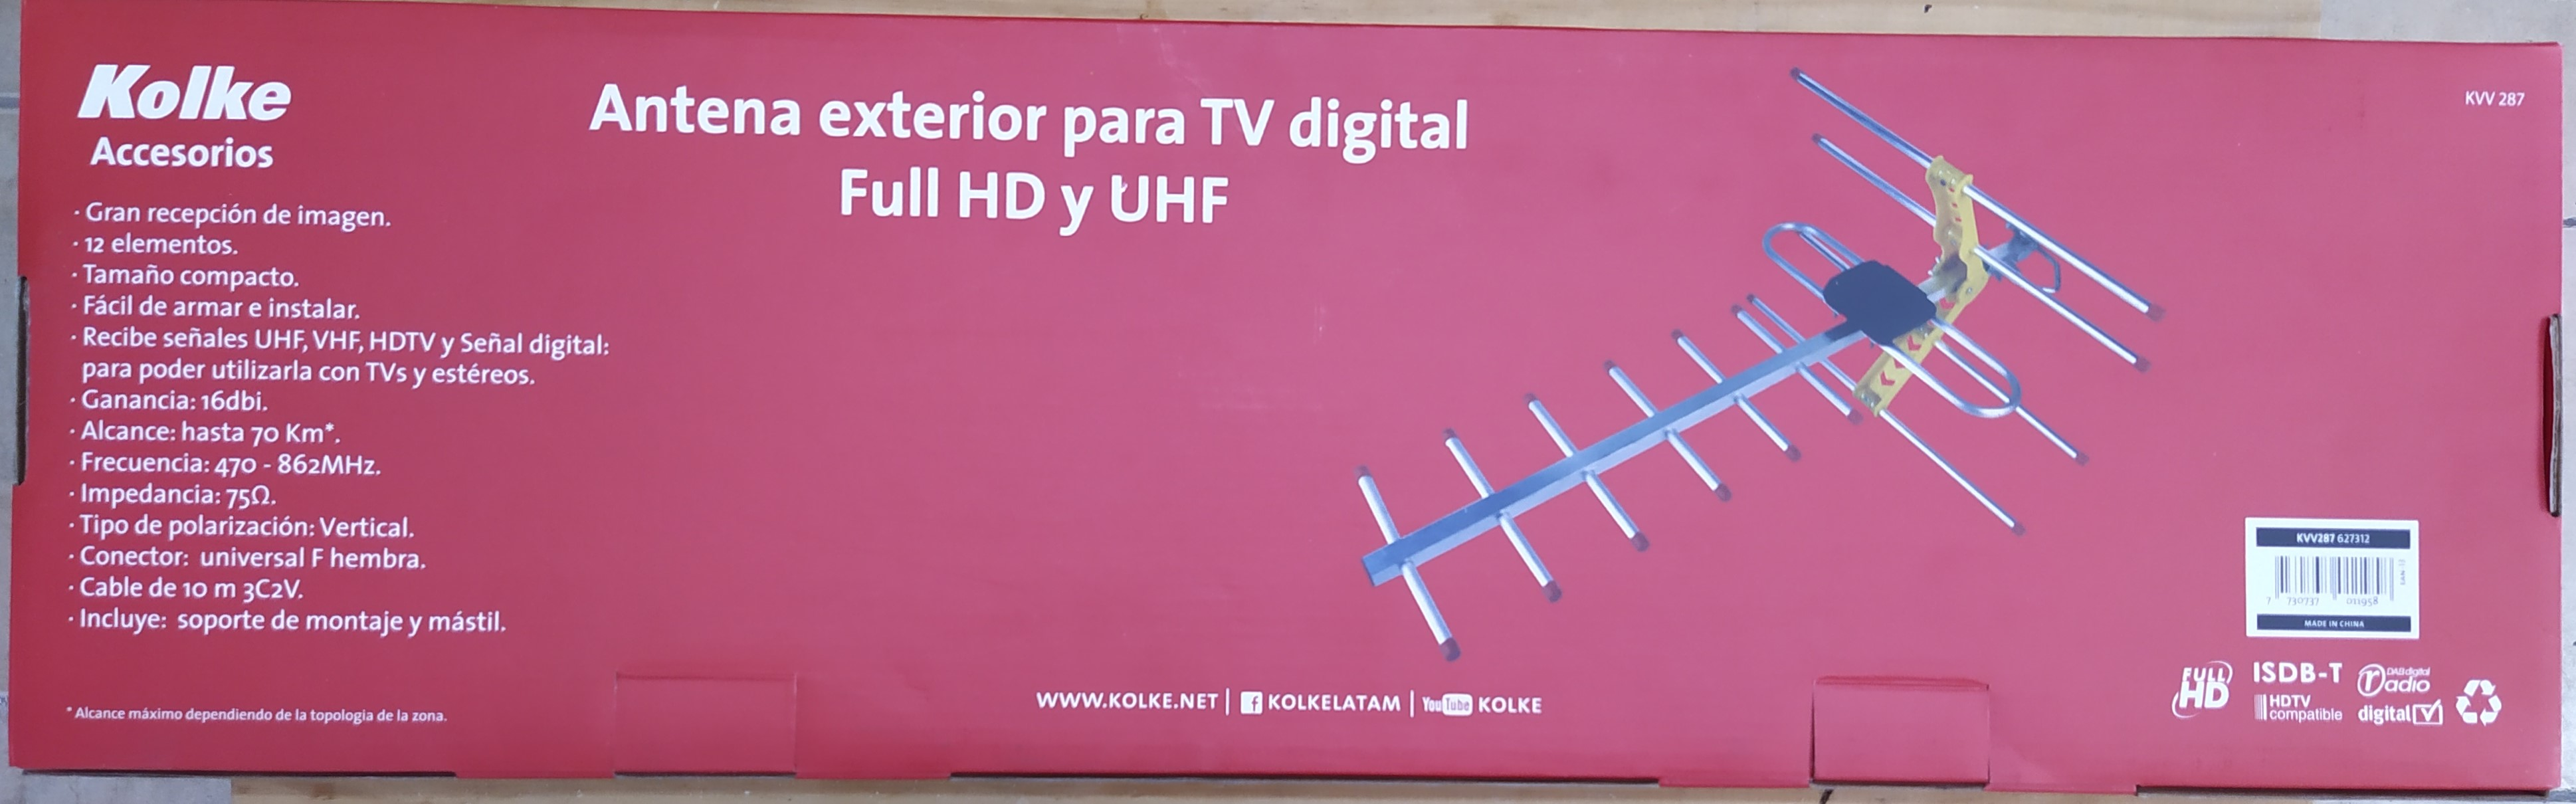 E16 ANTENA EXTERIOR PARA TV DIGITAL FULL HD Y UHF KOLKE